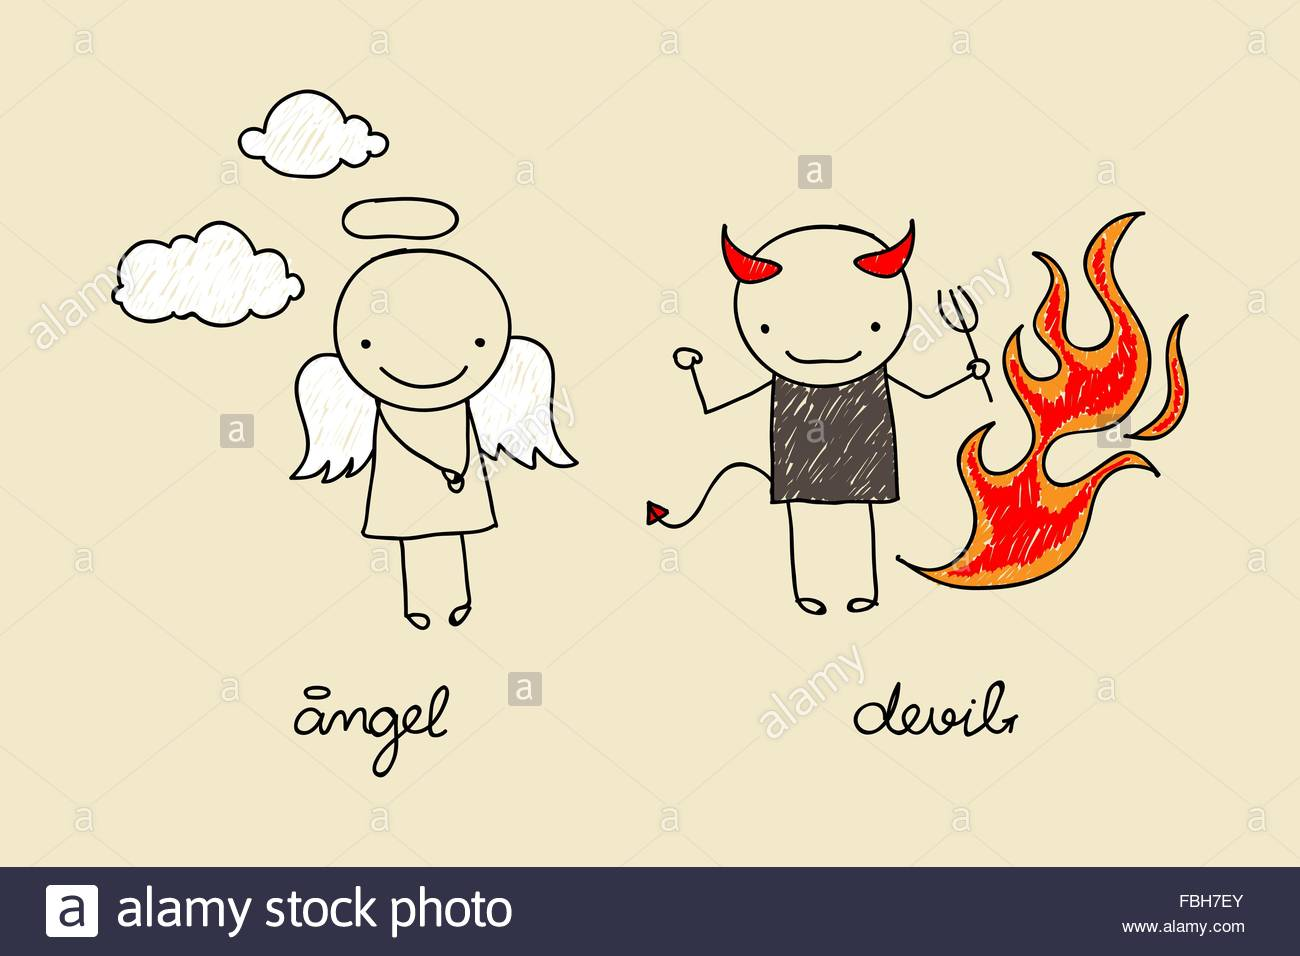 1300x956 Childish Drawing Of Cute Devil And Angel With Flames And Clouds